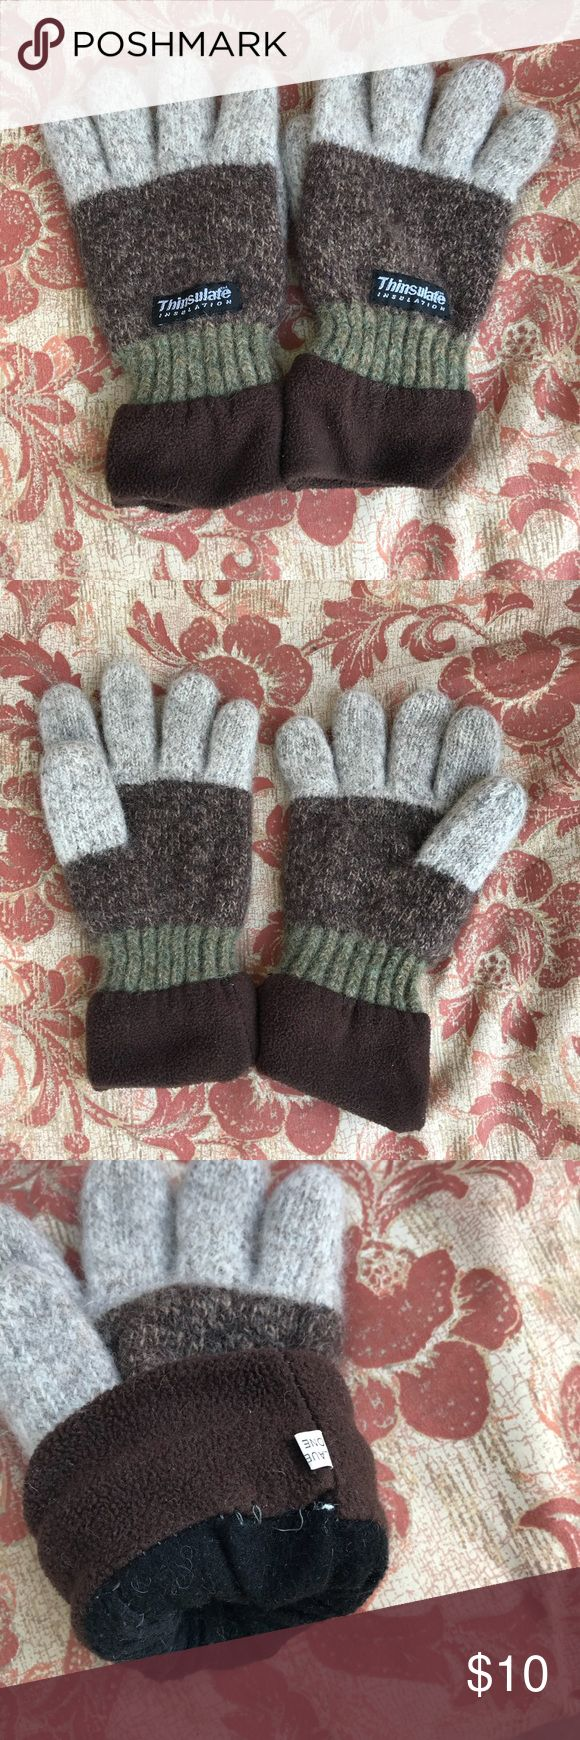 Wool Thinsulate gloves Warm and cozy wool gloves. Lined, so they are soft on inside. Grey, brown, green stripe. Some loose stitching on inside (see last pic), otherwise good used condition! Price reflects wear! Thinsulate Accessories Gloves & Mittens